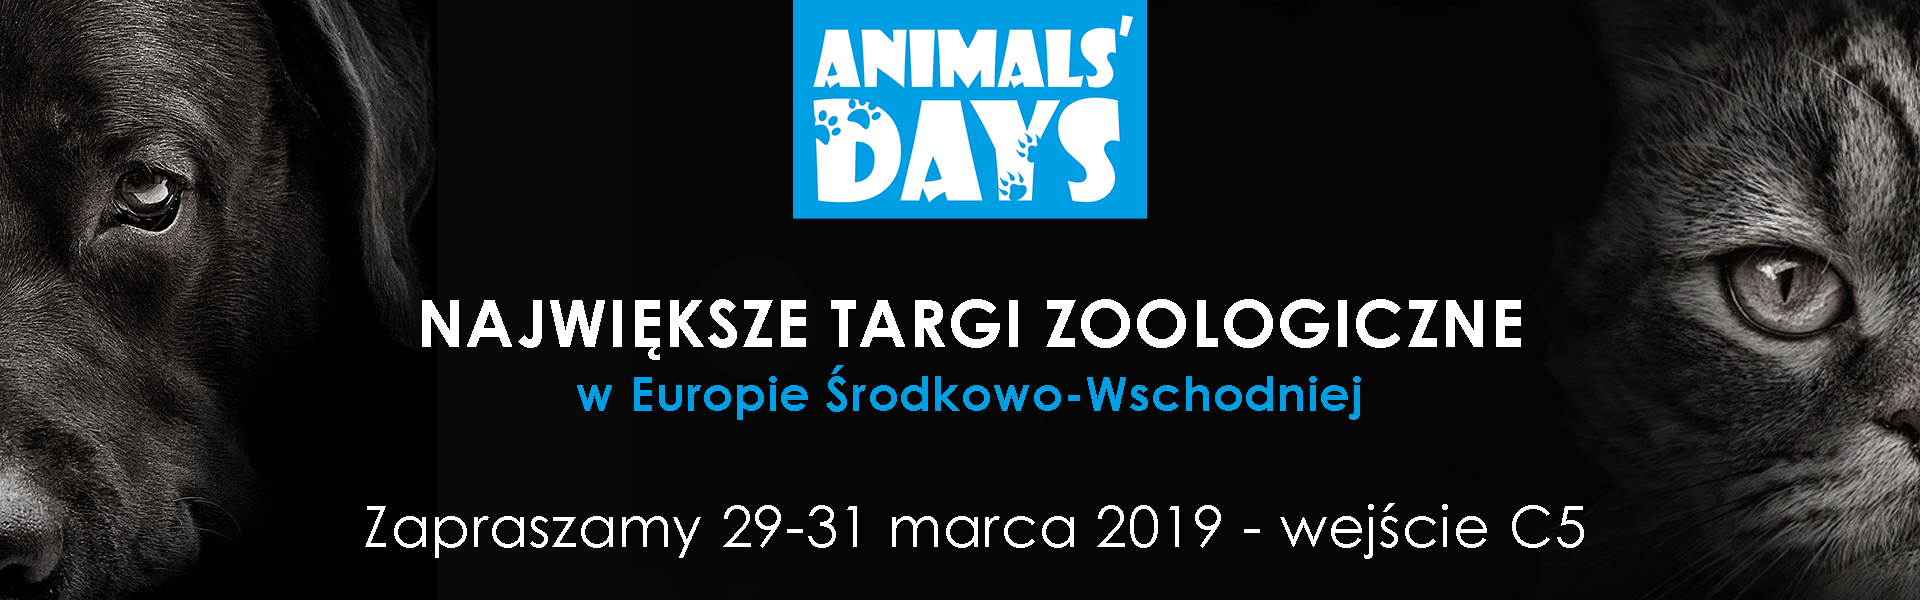 Targi Animals Days 2019